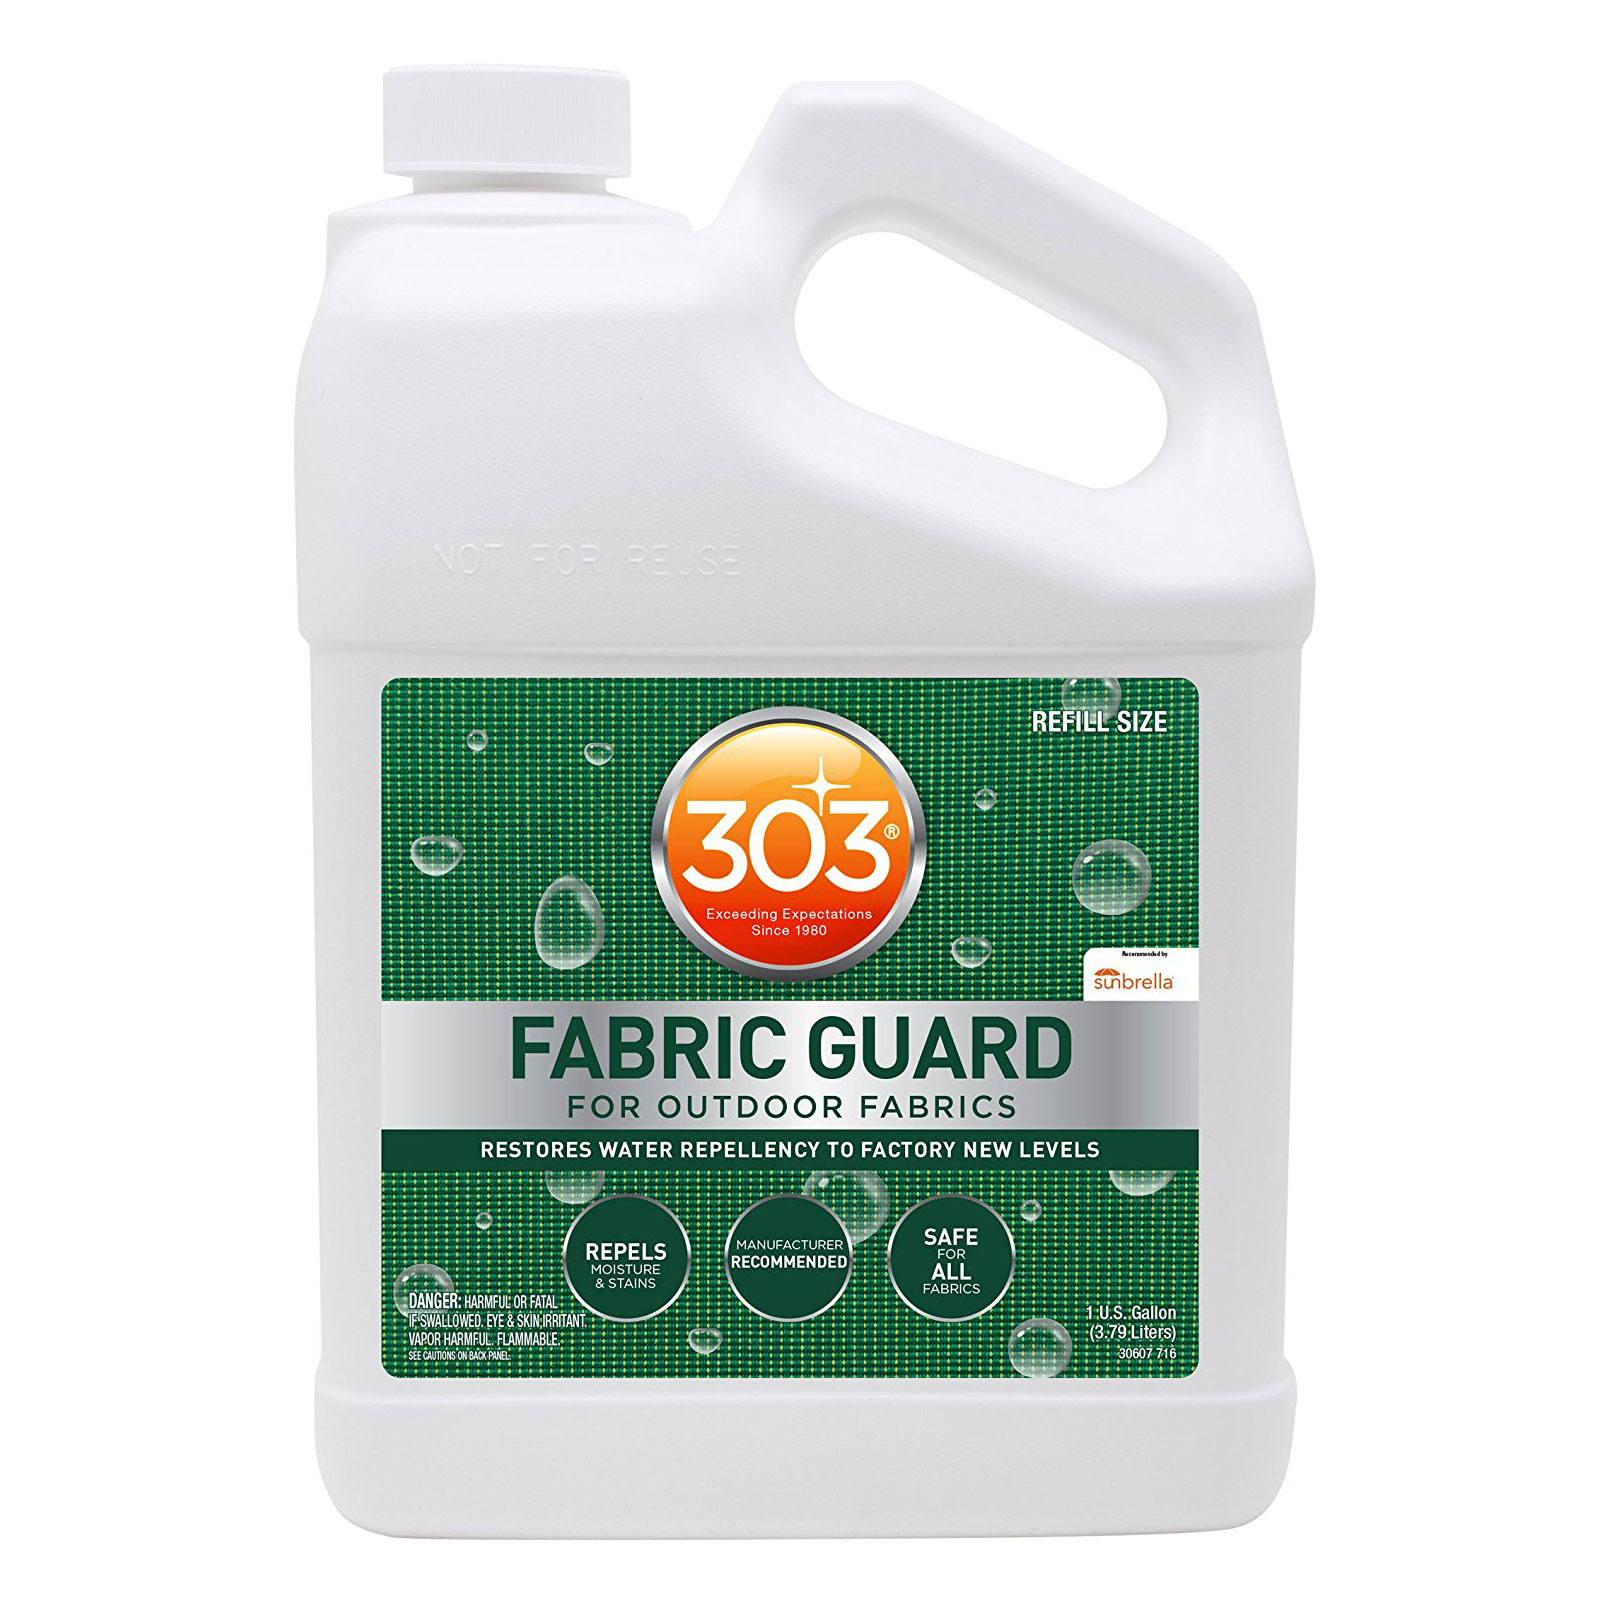 303 fabric guard stain protector and water repellent spray treatment 1 gallon